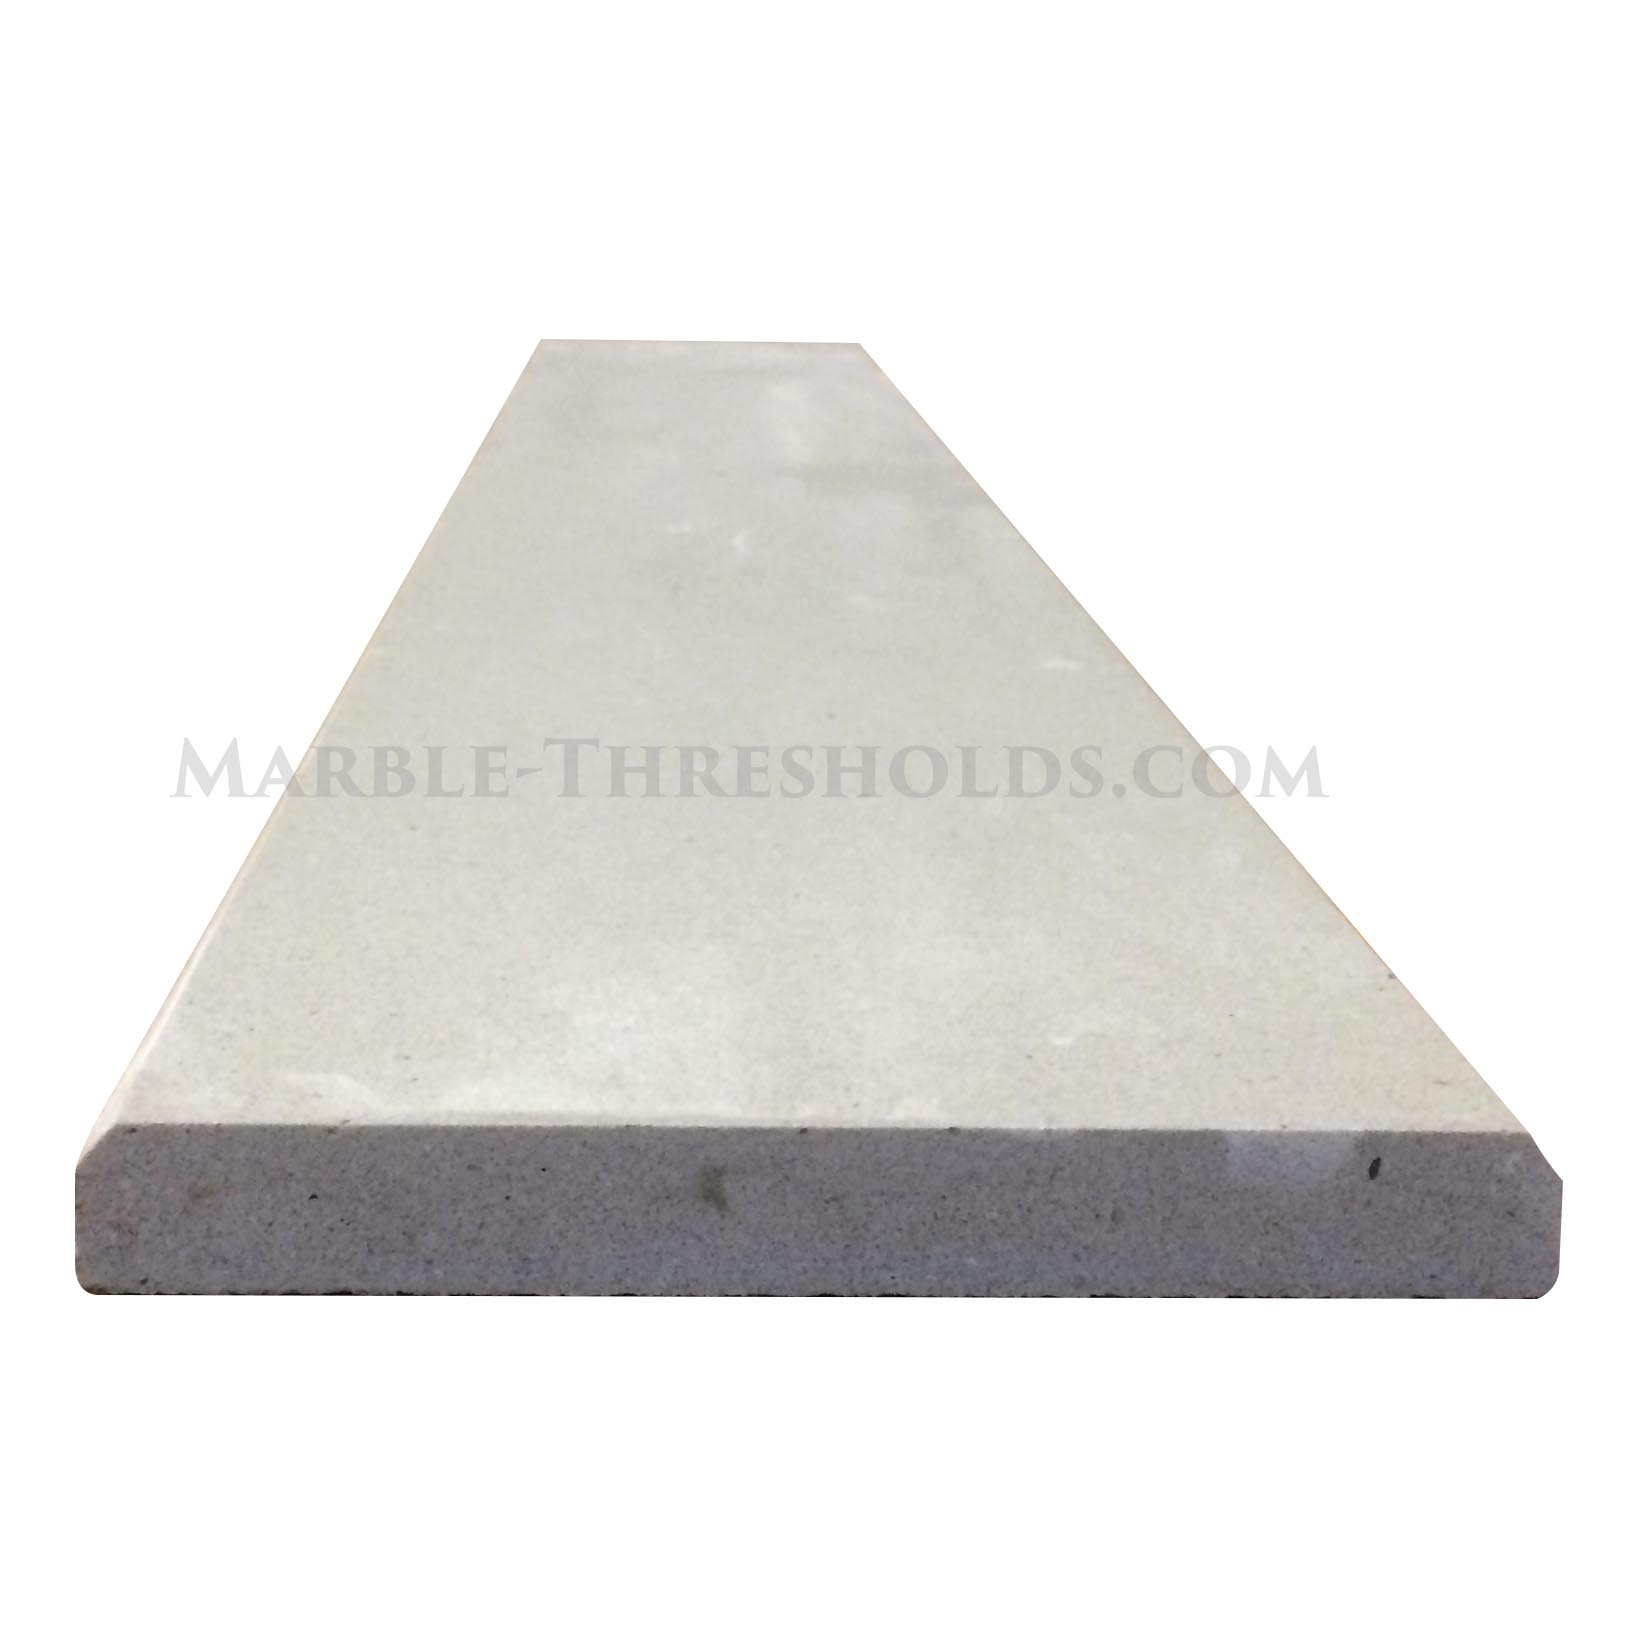 Door saddle e o 5 5 8 in x 36 in adjustable threshold for Home depot door threshold